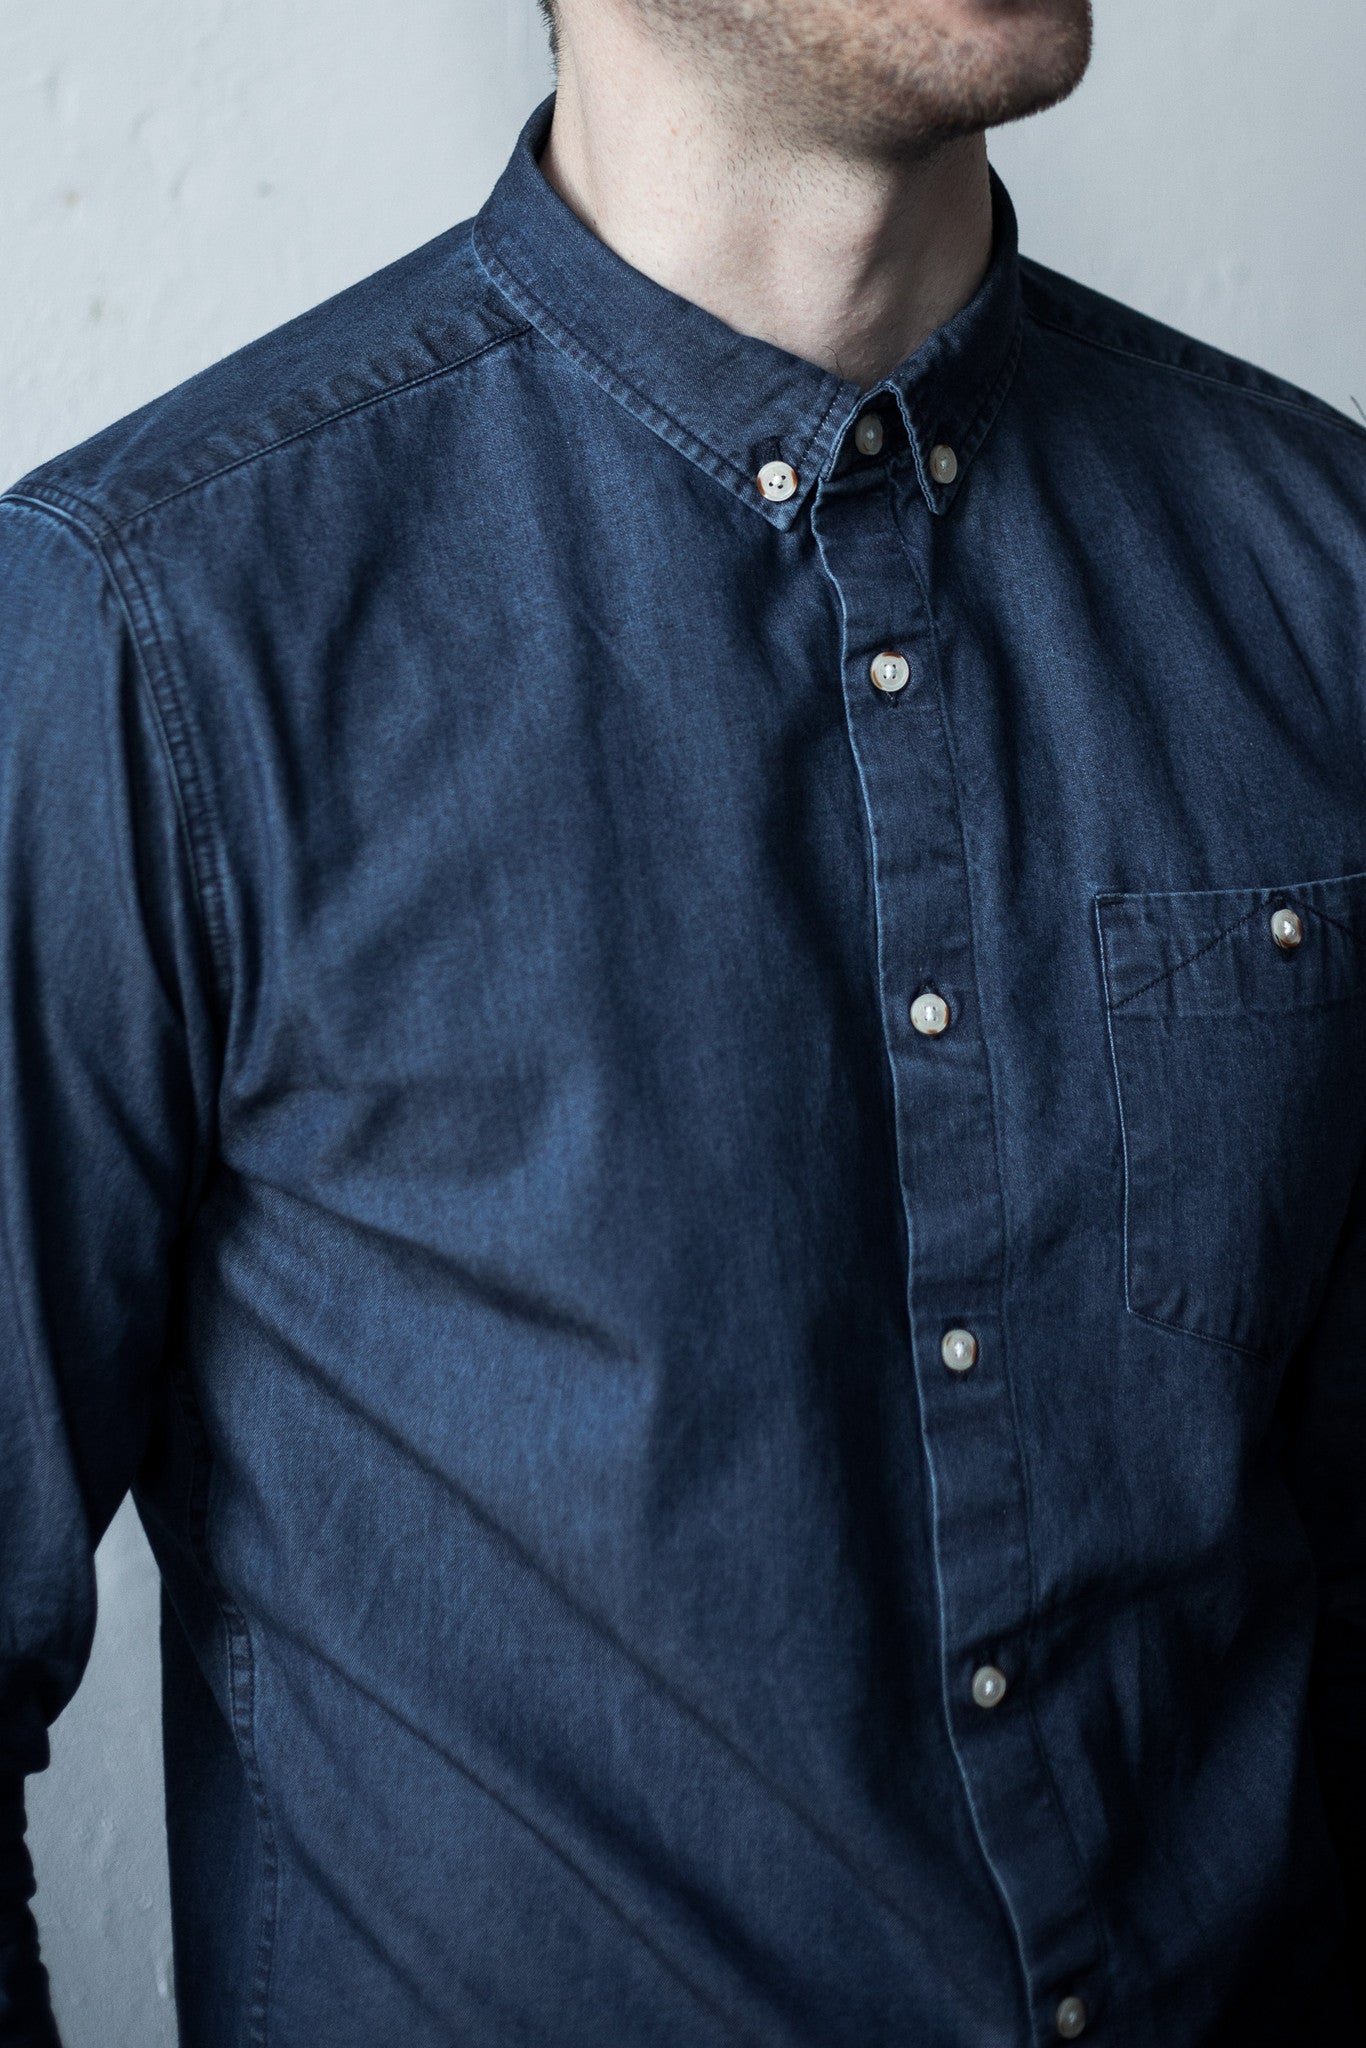 DENIM BUTTON UP - Fallow Ltd.